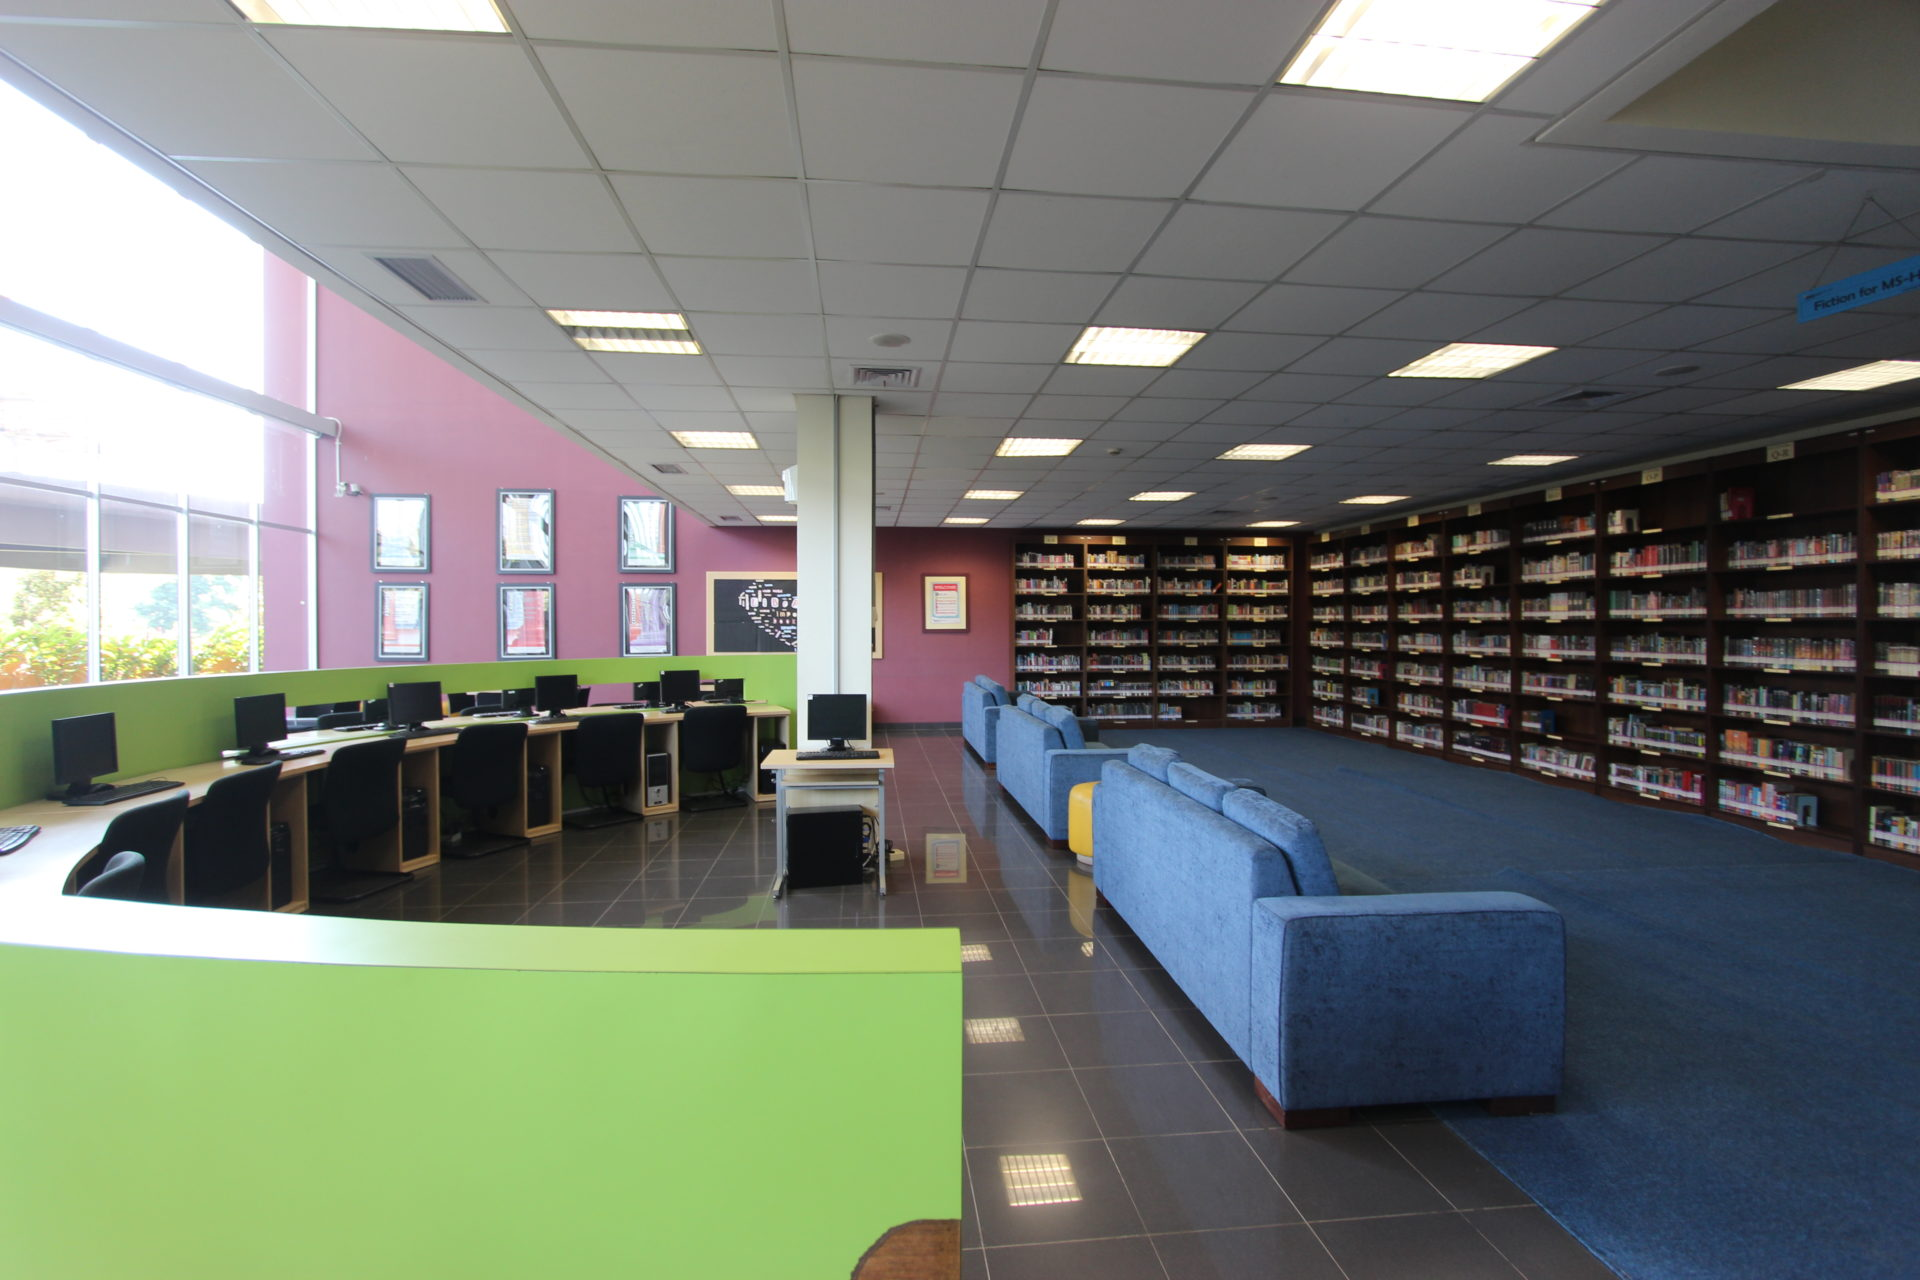 MS/HS Learning Resources Centre